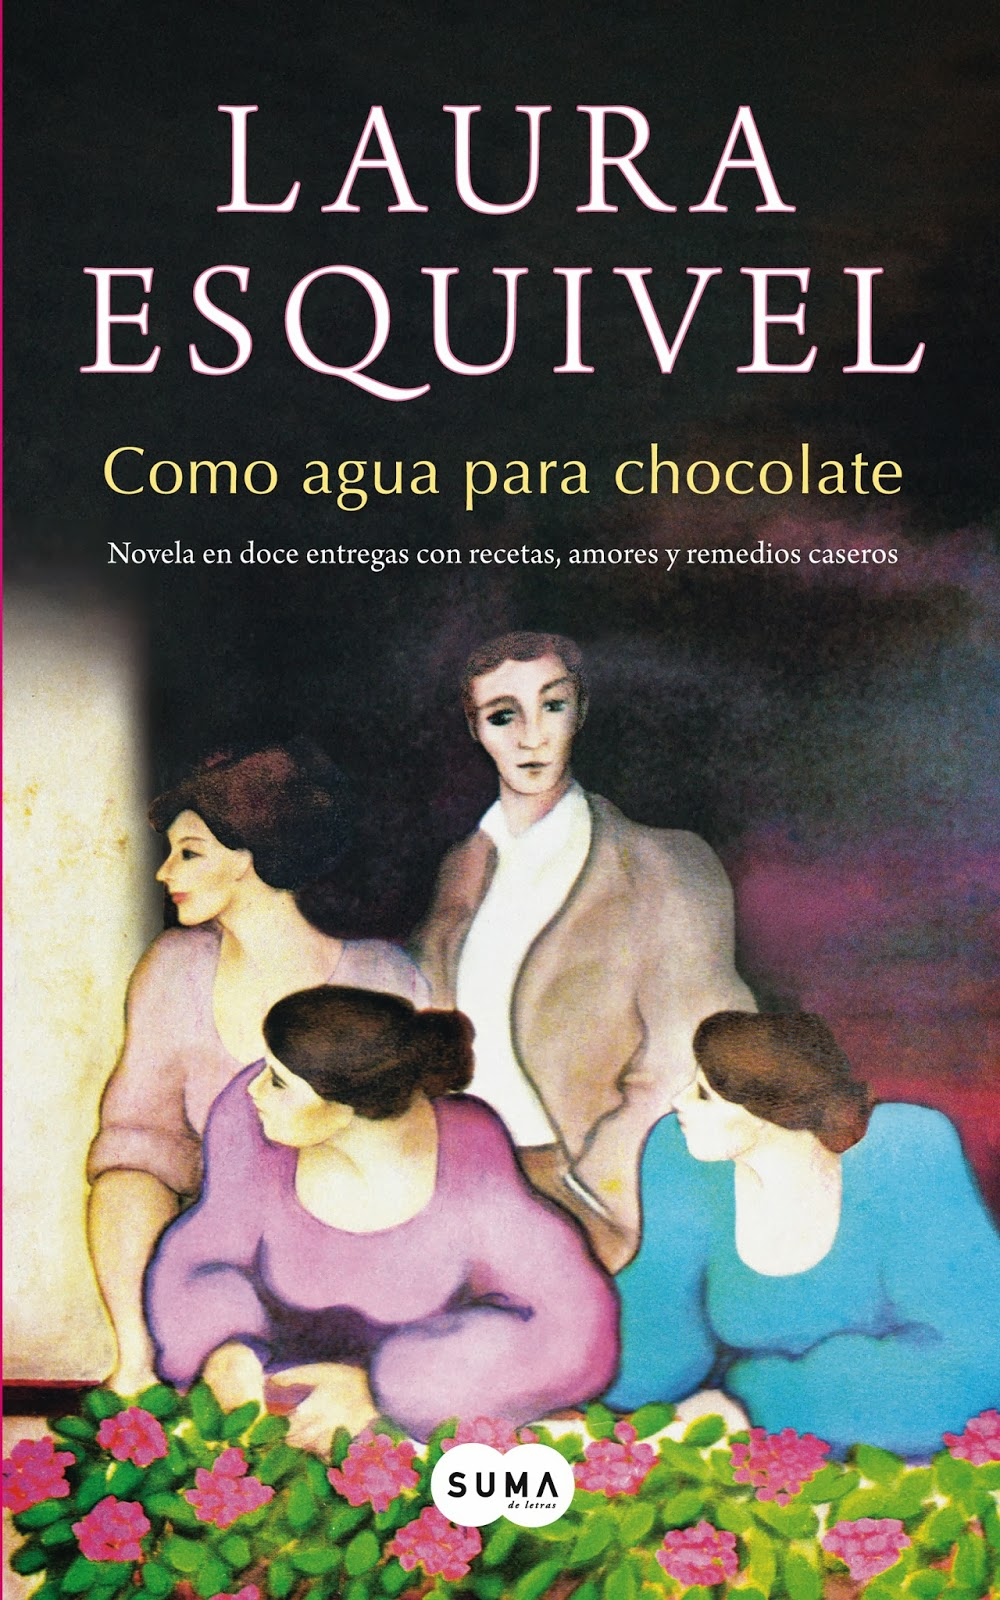 essay on role of food in like water for chocolate Why should you care about food in laura esquivel's like water for chocolate we have the answers here, in a quick and easy way.